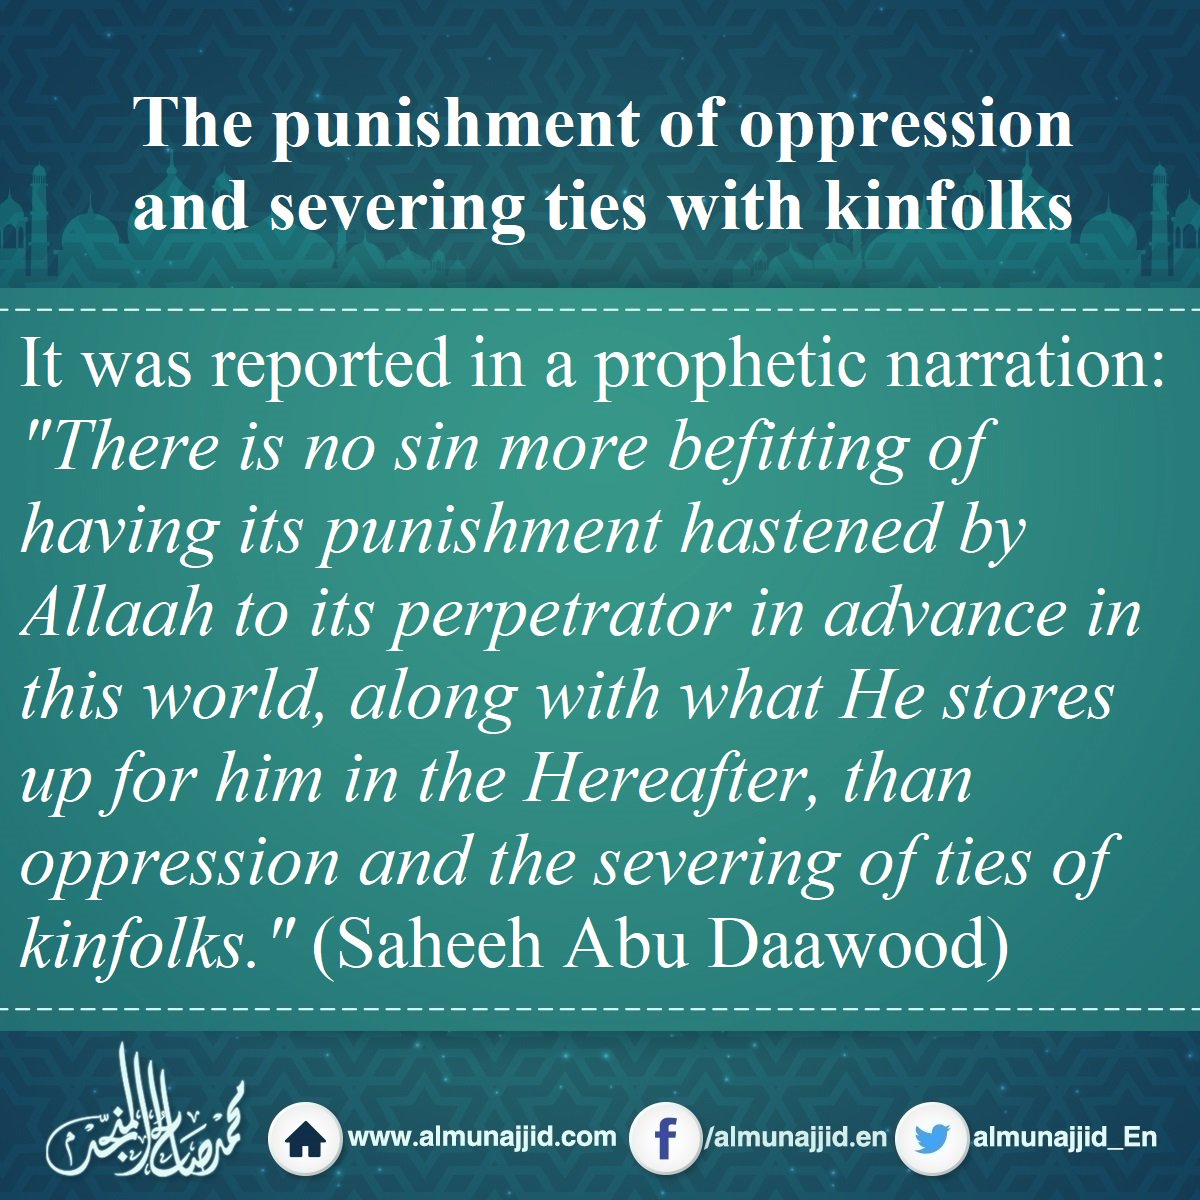 The punishment of oppression and severing ties with kinfolks  #punishment #oppression #kinfolks #sin #Allah<br>http://pic.twitter.com/fEAnEGwf8E